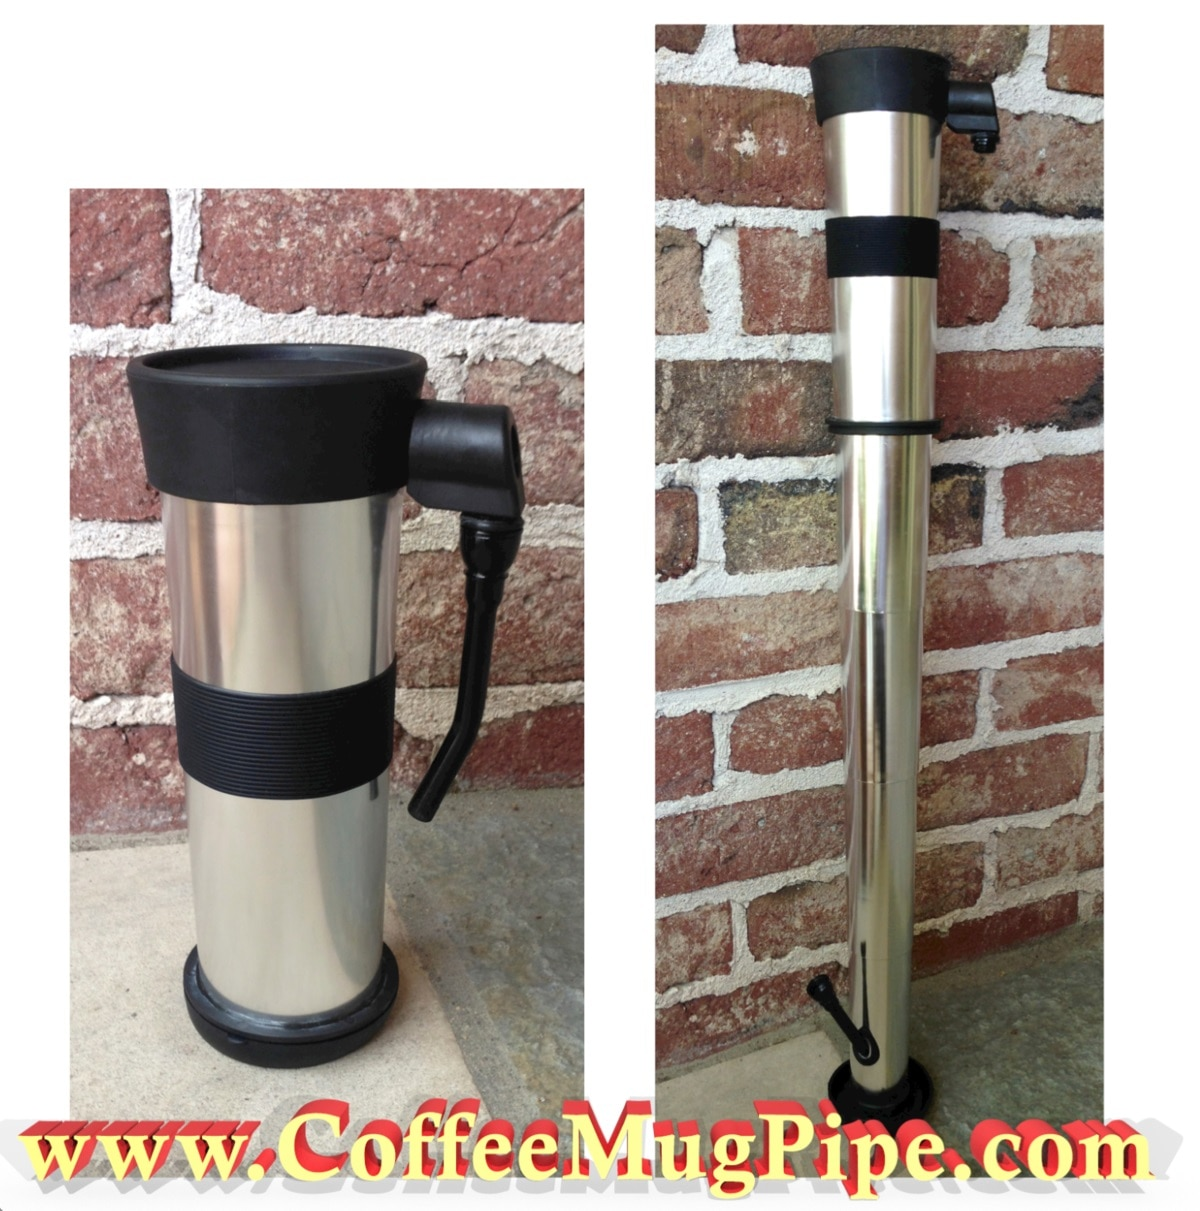 bong22 - Cabin in the Woods Coffee Mug Bong Is Now a Real Thing; Order Yours Today!